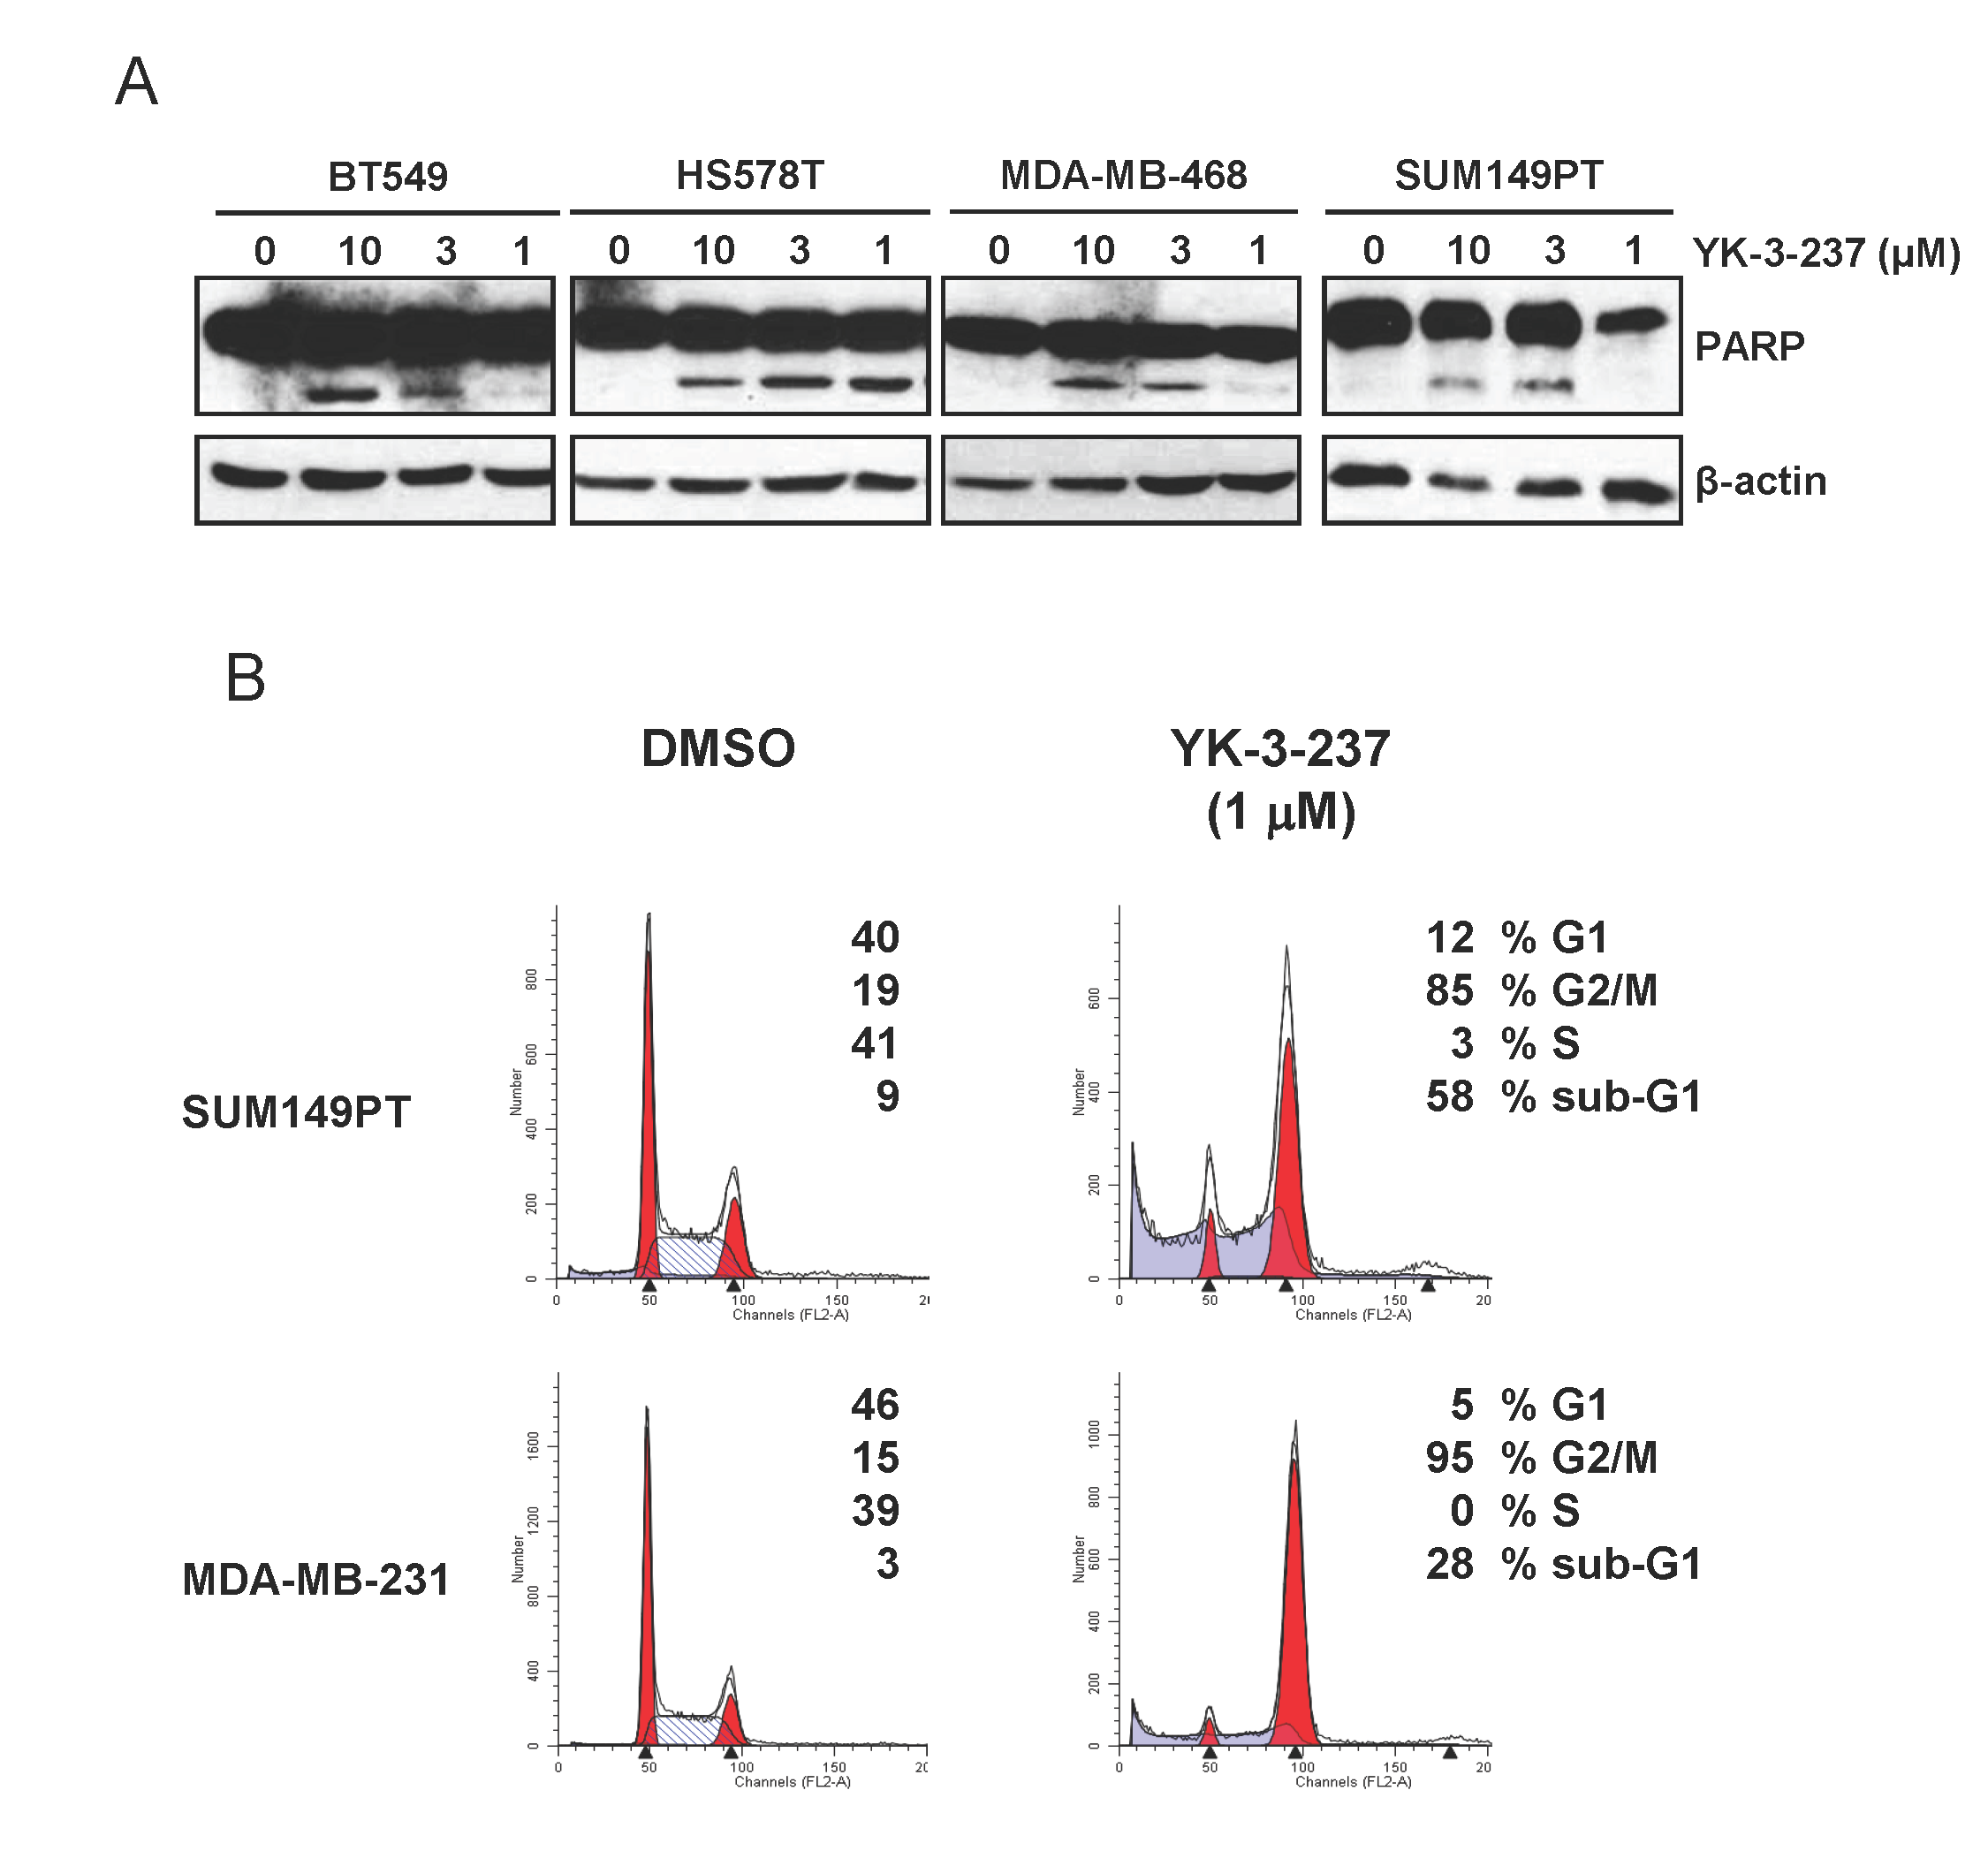 Induction of apoptotic cell death and G2/M arrest by YK-3-237 in TNBC cell lines.